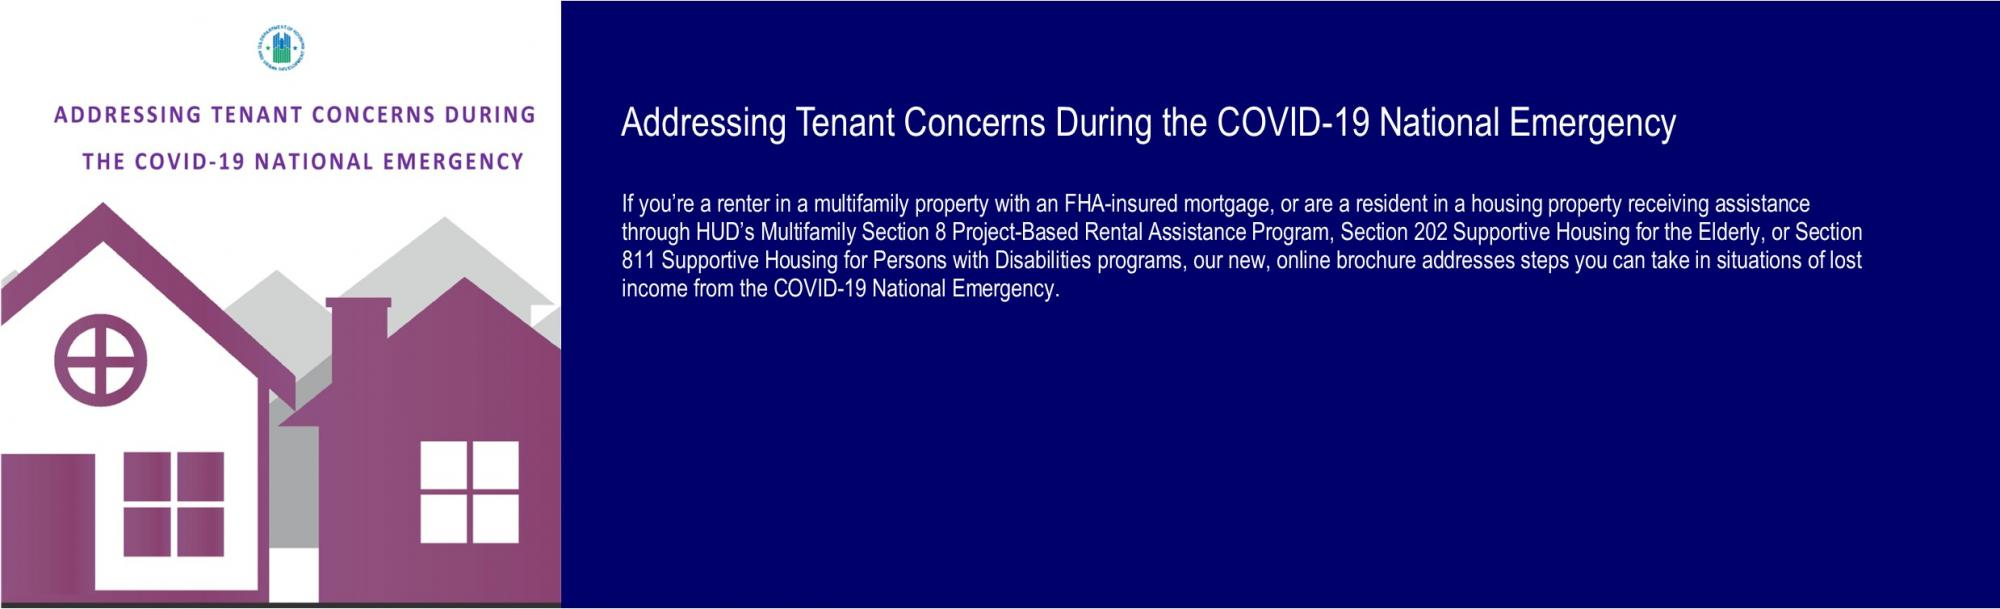 [Addressing Tenant Concerns During the COVID-19 National Emergency]. HUD Photo